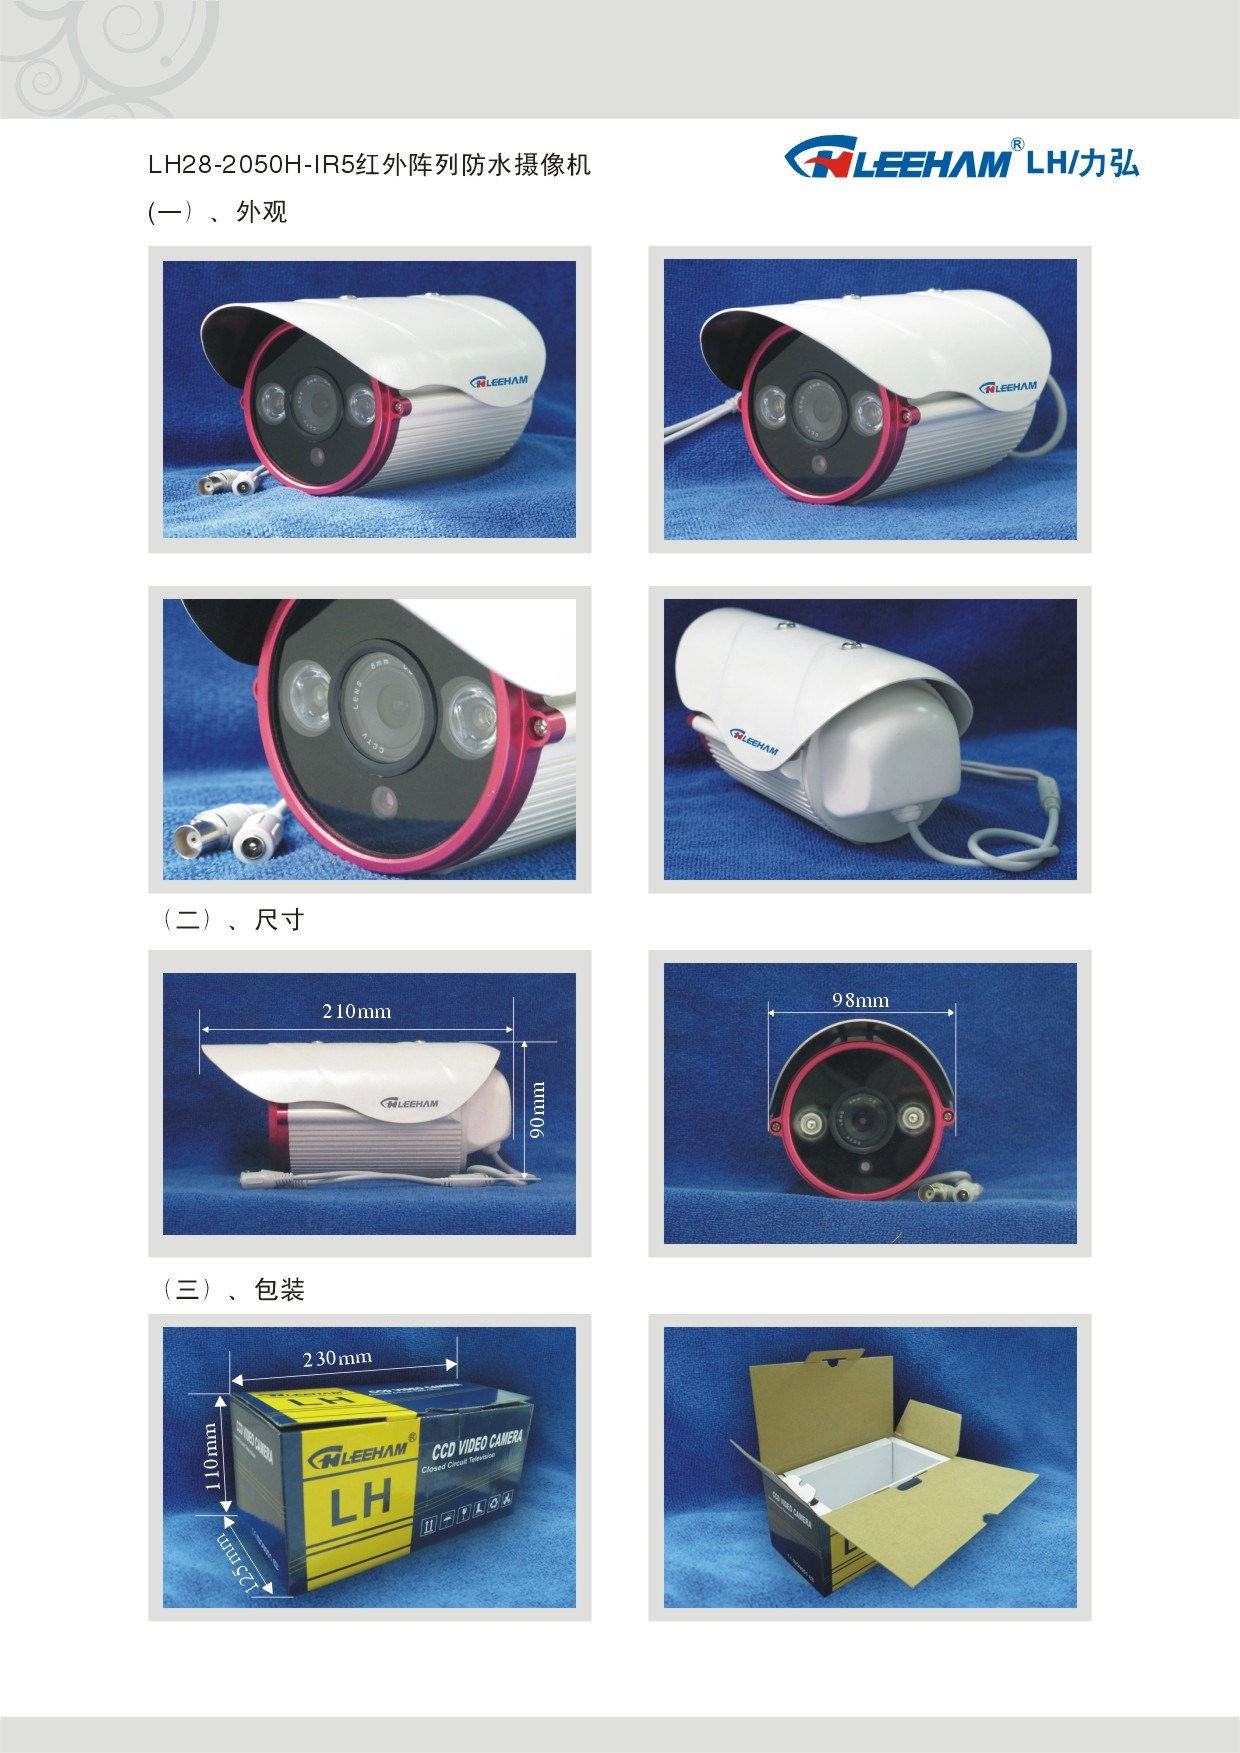 Sony CCD Outdoor IR Waterproof CCTV Camera